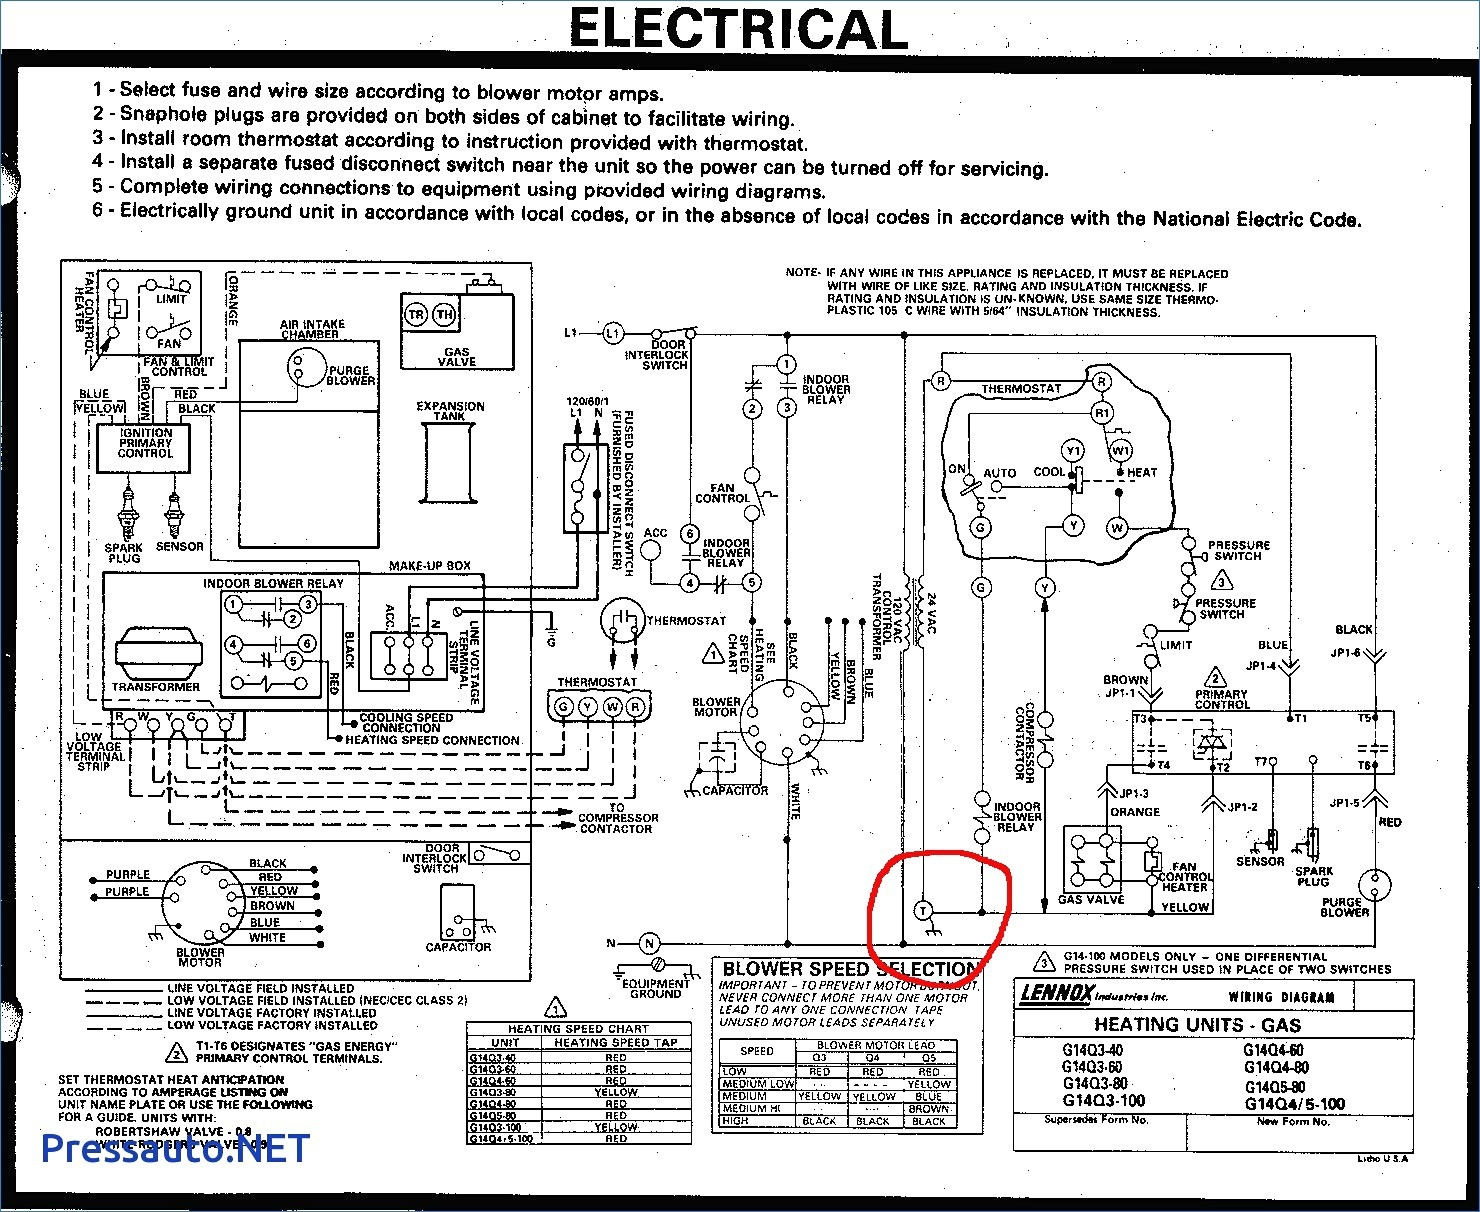 Diagram Honeywell Fan Limit Switch Wiring Diagram Download